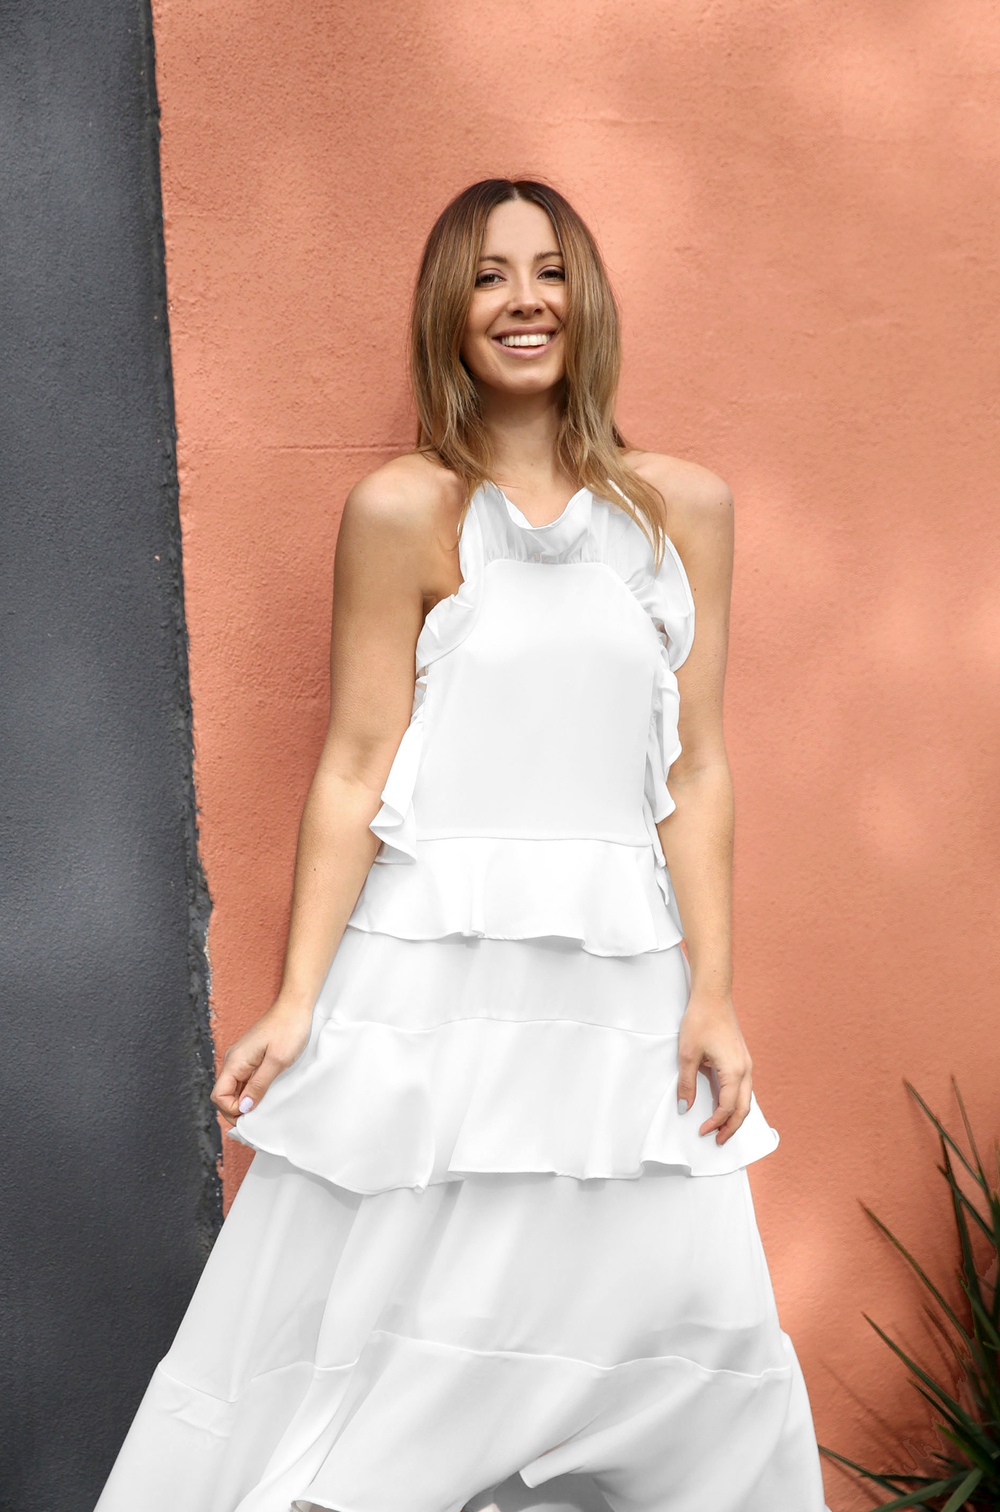 FriendInFashion_WhiteDress_StreetStyle_Vogue_4.jpg